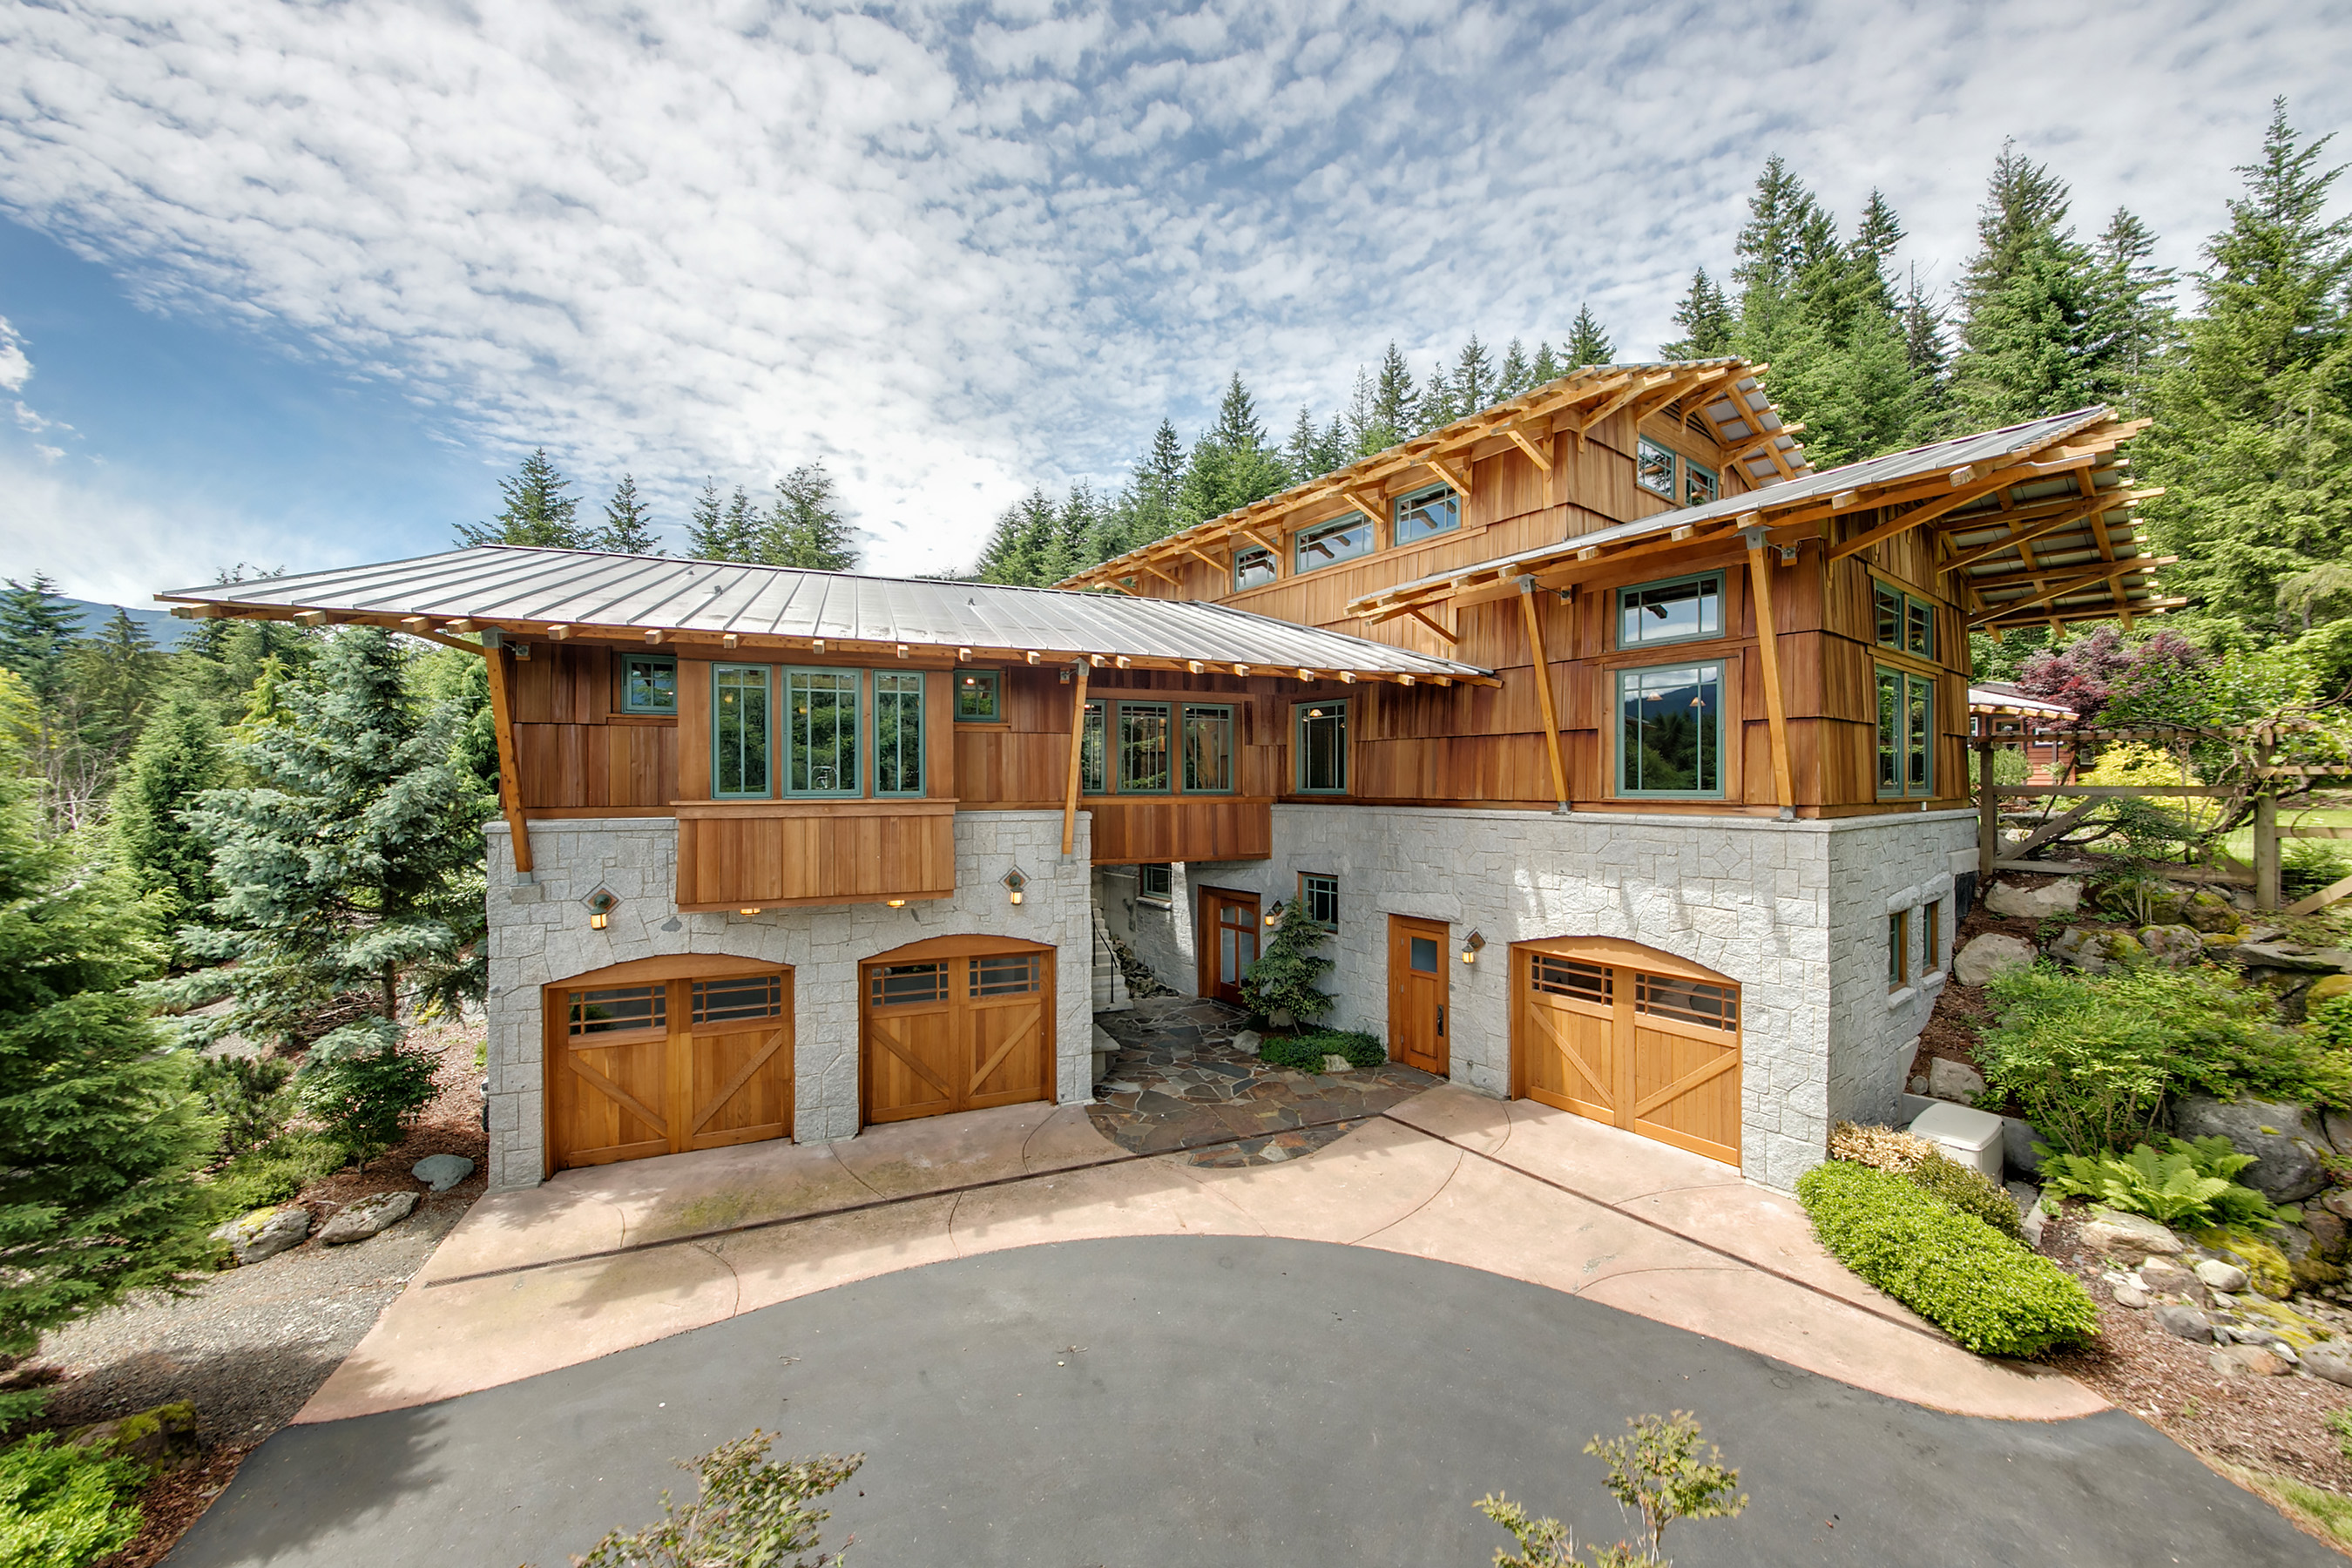 Look At The Beams, A Highlight Of The Log Lodge Style. They Extend Past The  Roof, And Support The Eaves Outside. Inside, The Post And Beam Construction  ...